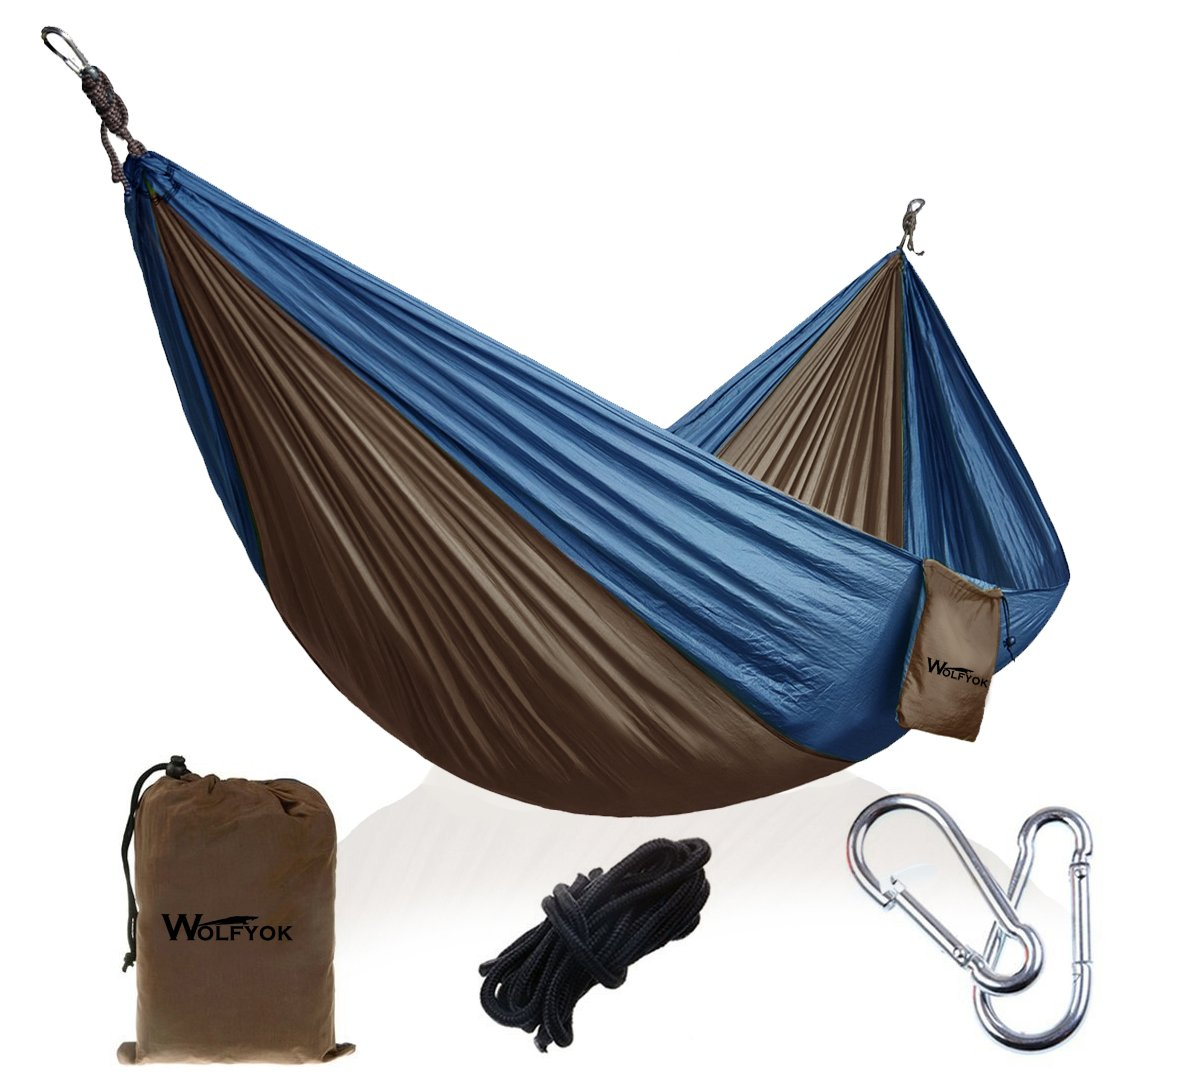 wolfyok Portable Camping Single Double Hammock Lightweight Portable Nylon Hammock with Parachute Nylon Ropes and Solid Carabiners for Backpacking, Camping, Travel, Beach, Yard